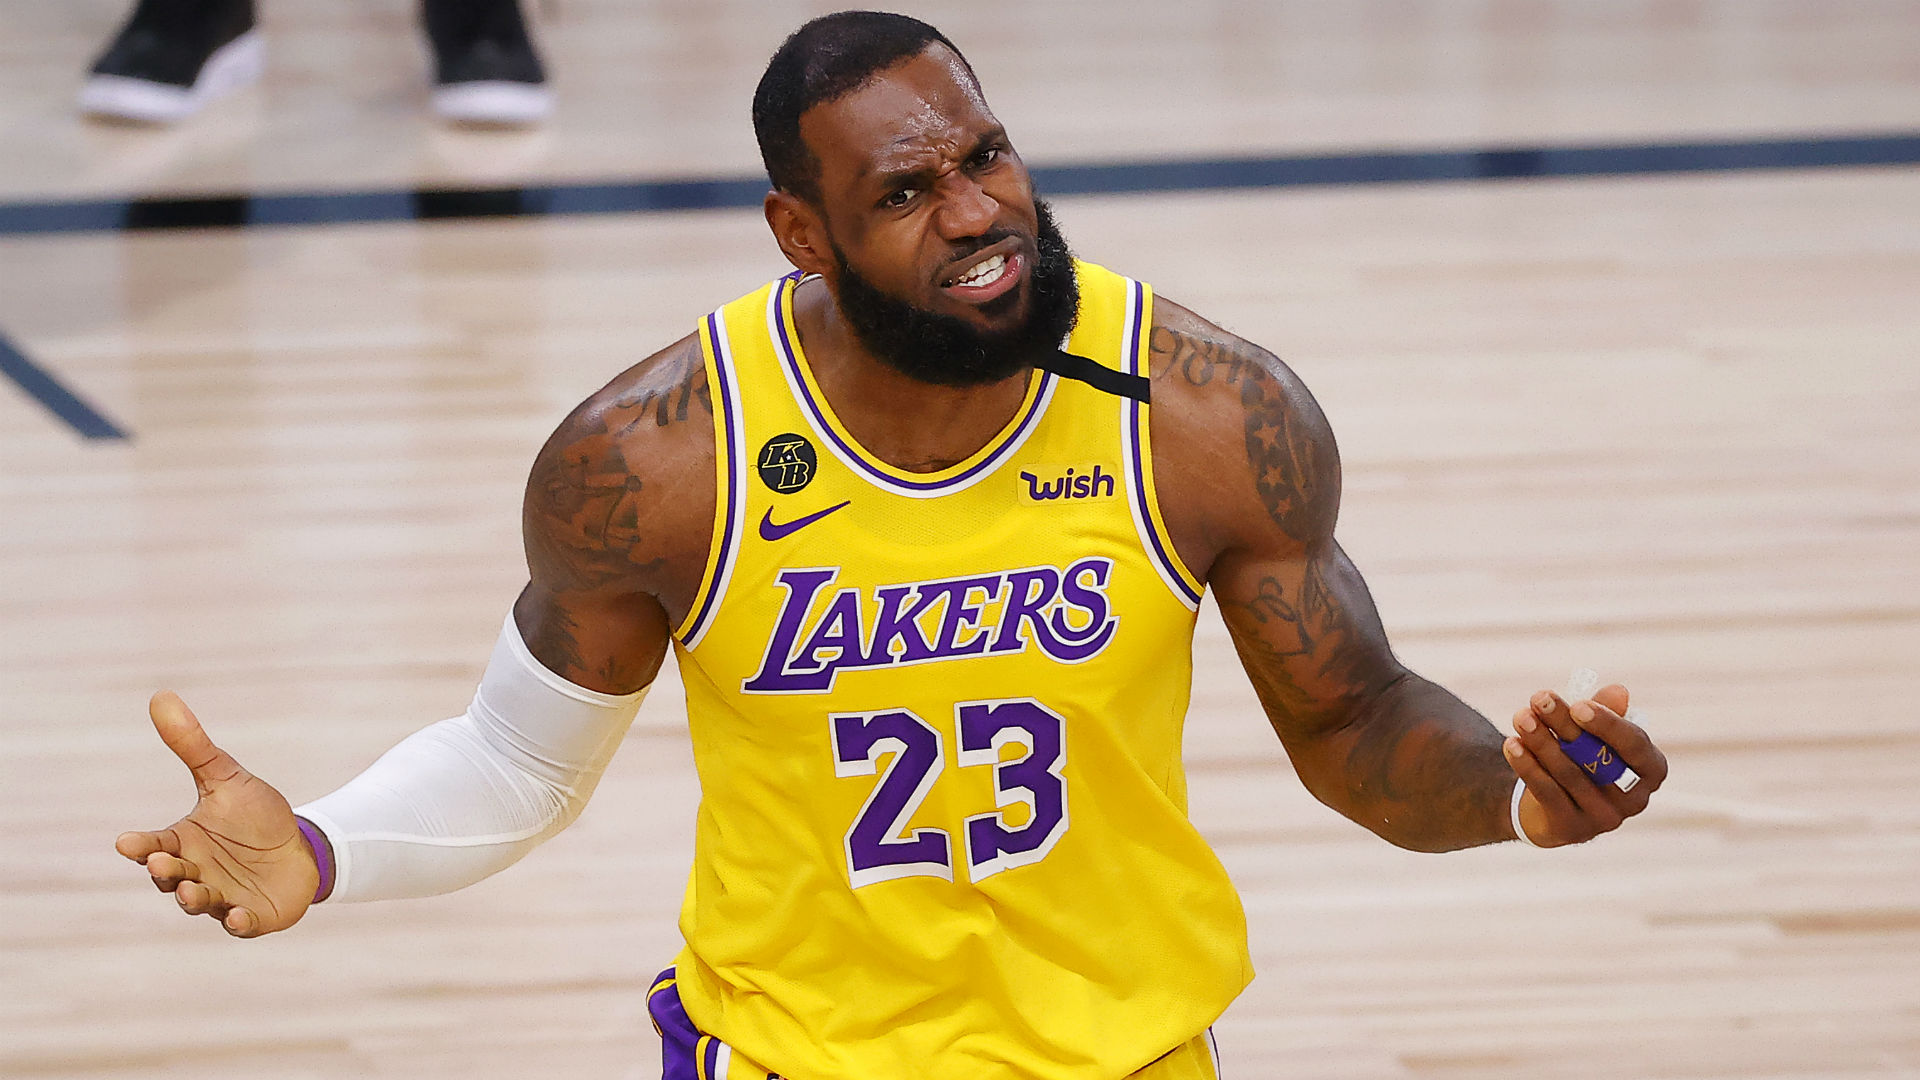 Lakers' LeBron James rips NBA's plans to hold 2021 All-Star Game: 'Kind of a slap in the face'